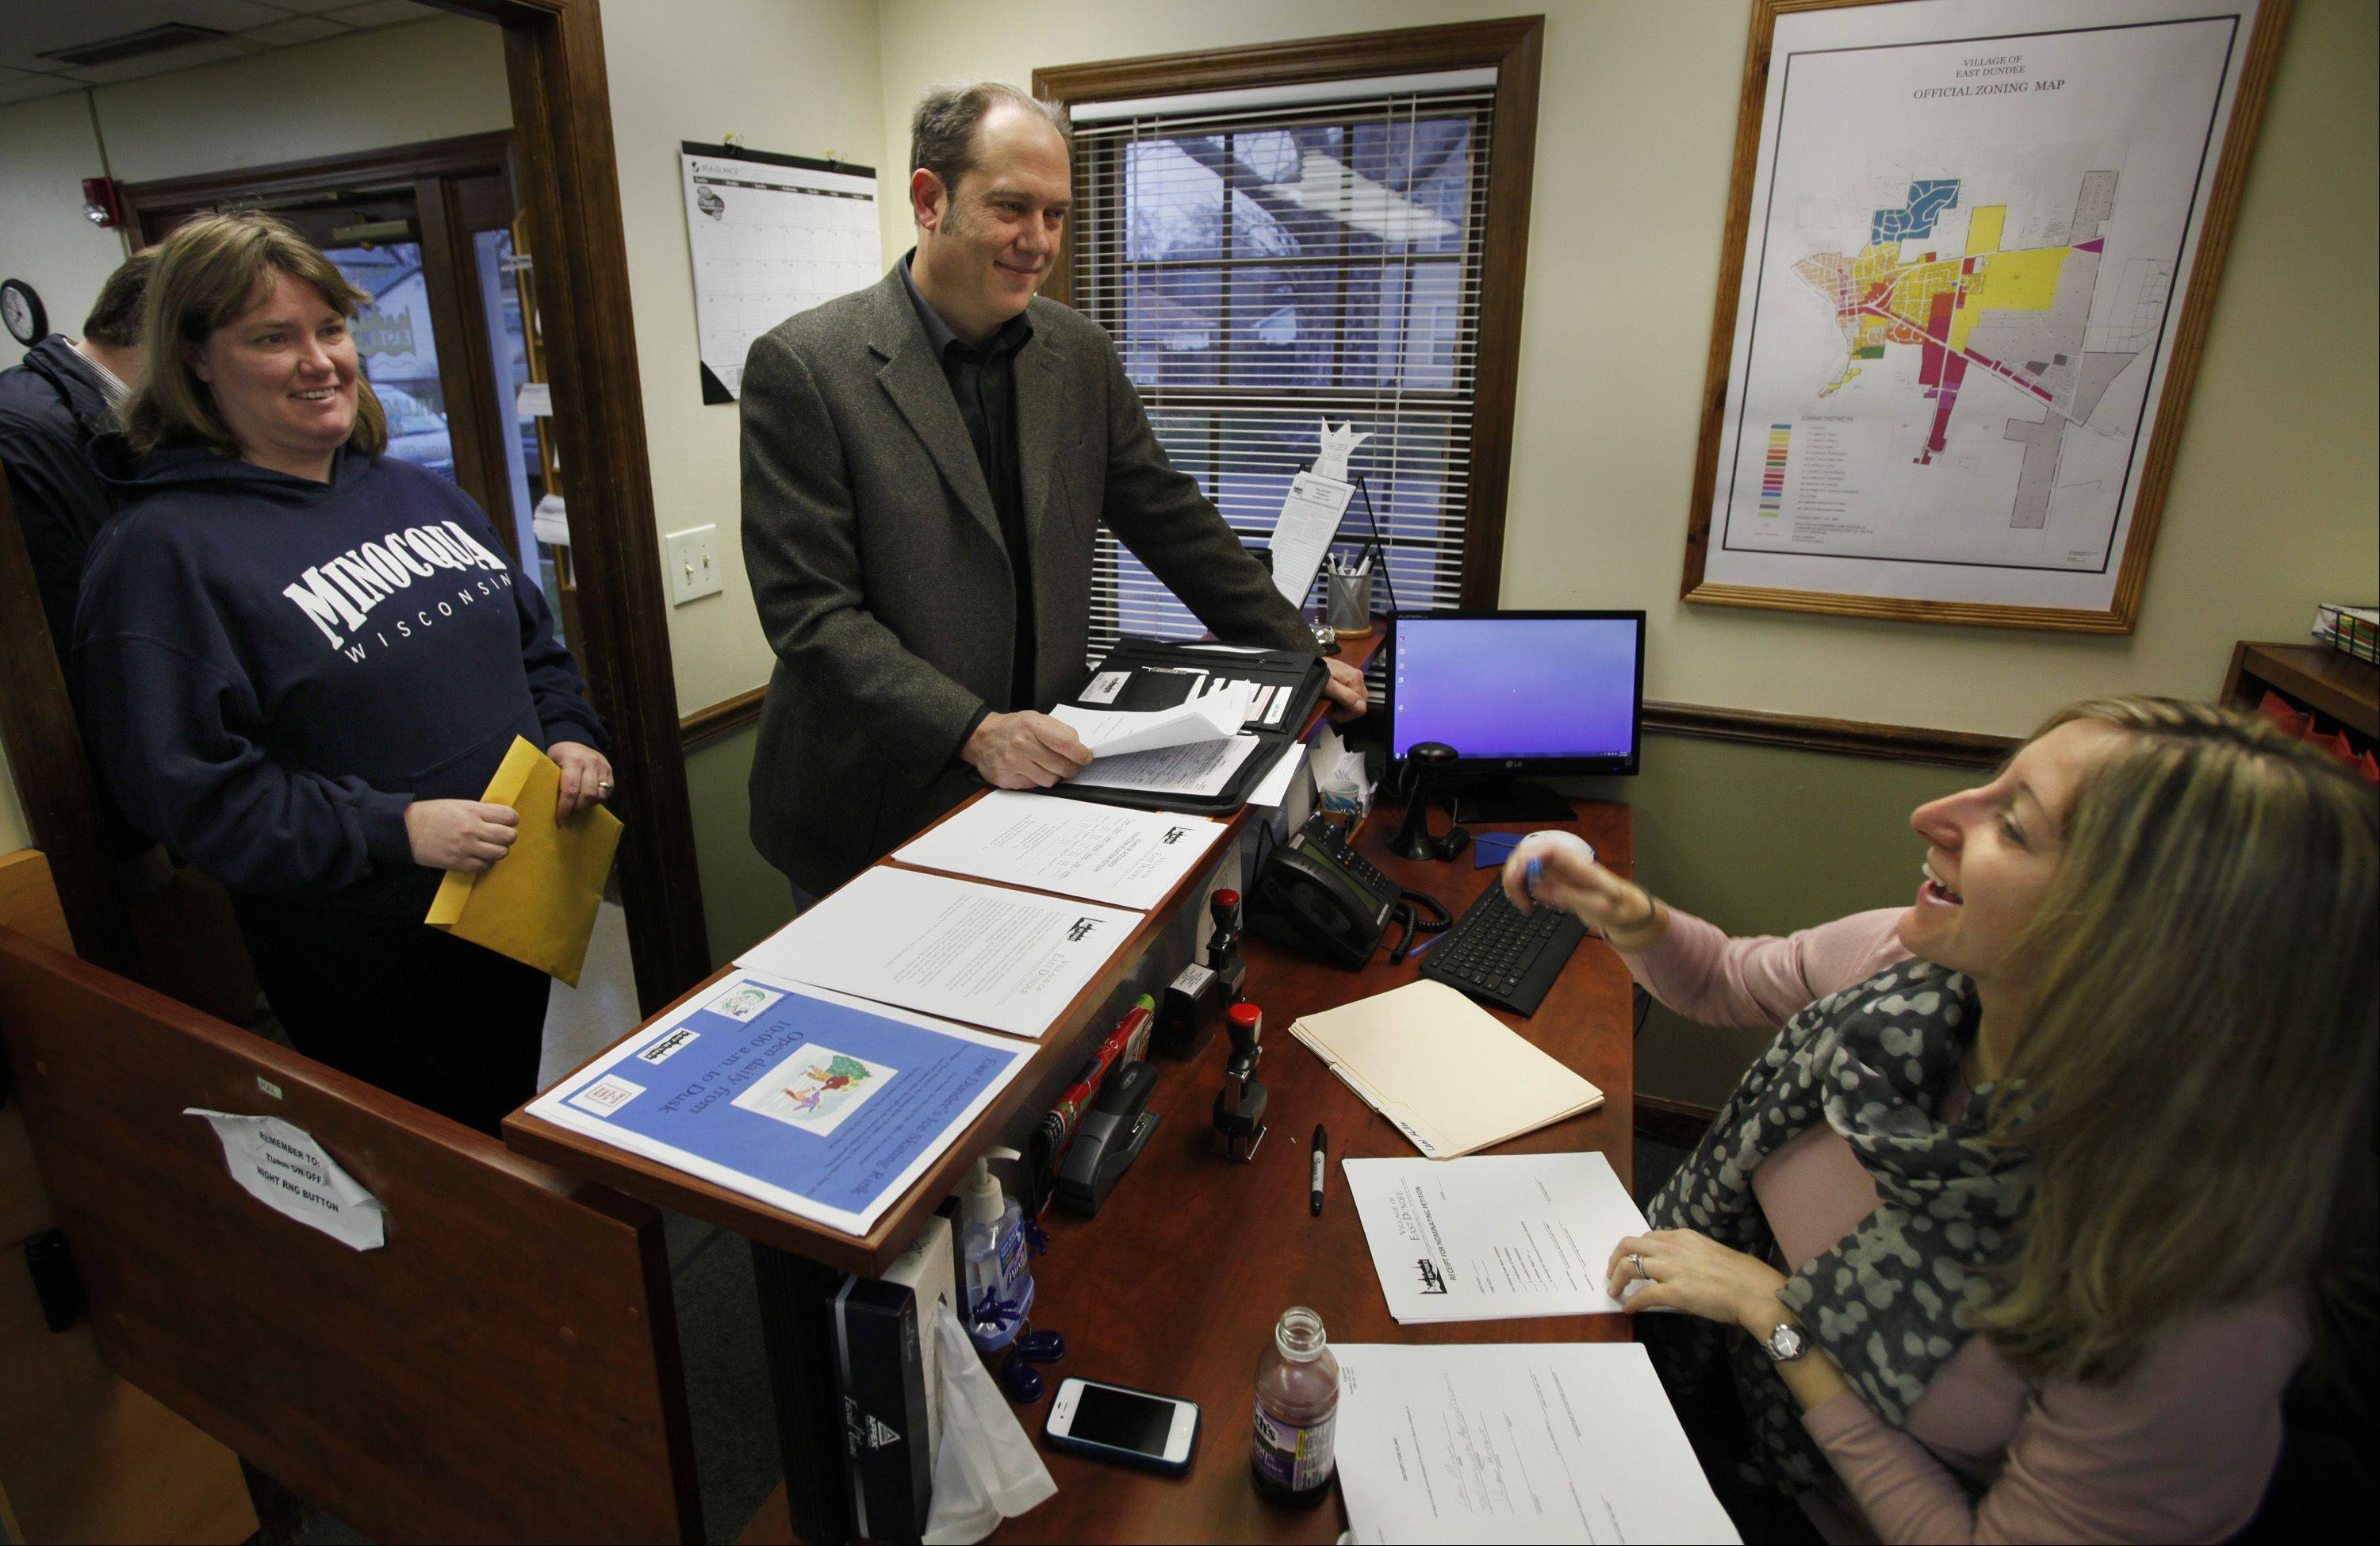 East Dundee Trustee Lael Miller was first in line Monday morning to file his paperwork for village president with Deputy Village Administrator Heather Maieritsch, who is also the acting village clerk. Waiting behind Miller is Kristi Selep who was dropping off paperwork for her husband, Dan, who is also running for trustee.